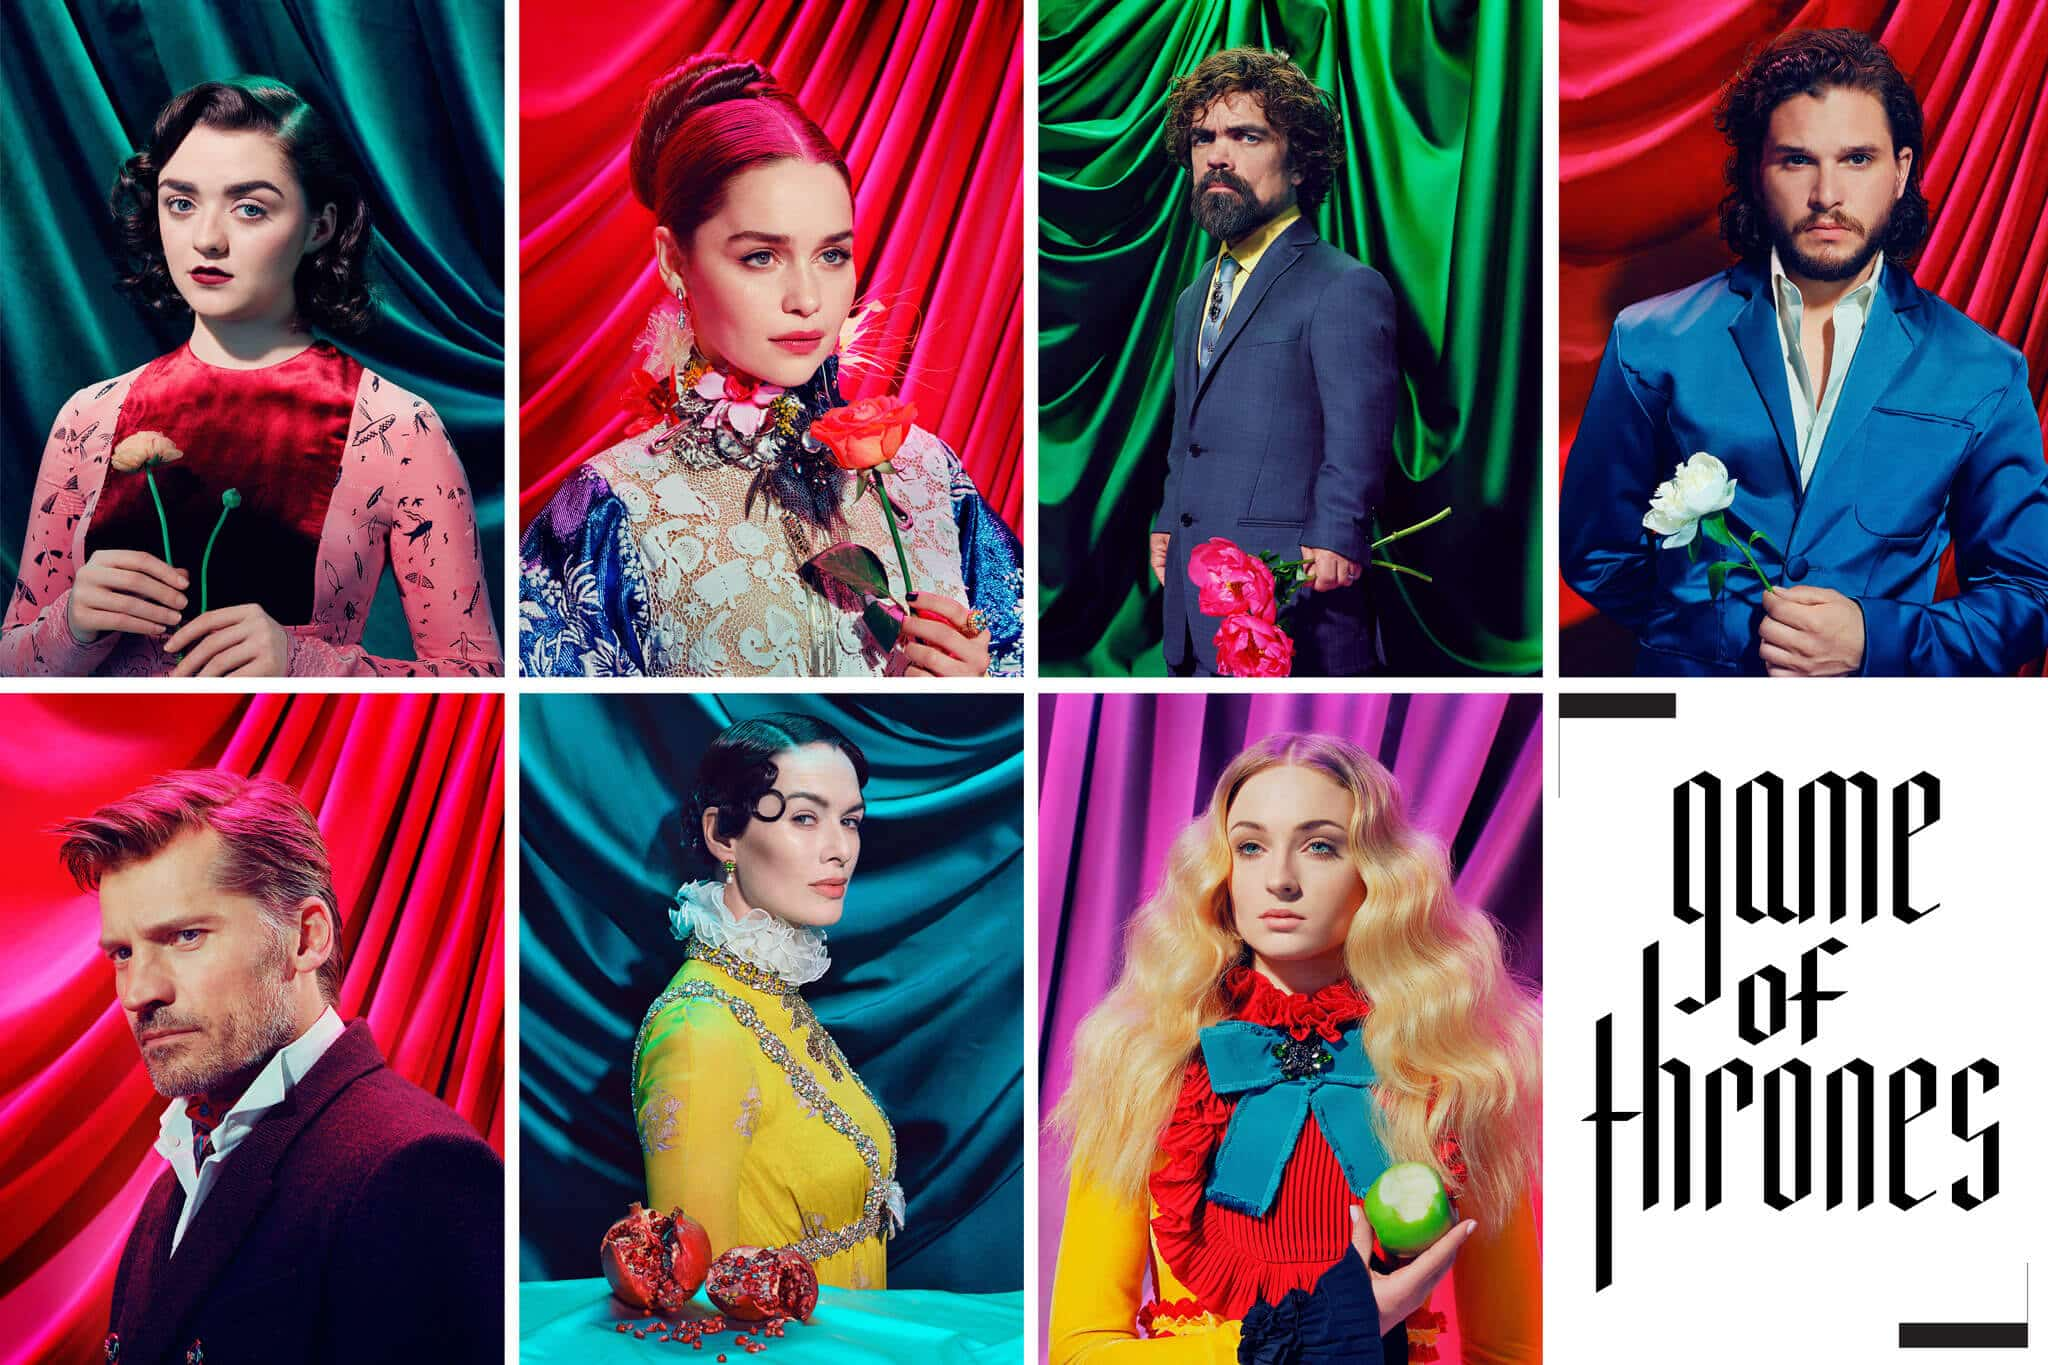 Game Of Thrones Cast Looking Totally Psychedelic in TIME Magazine's Photo-session -